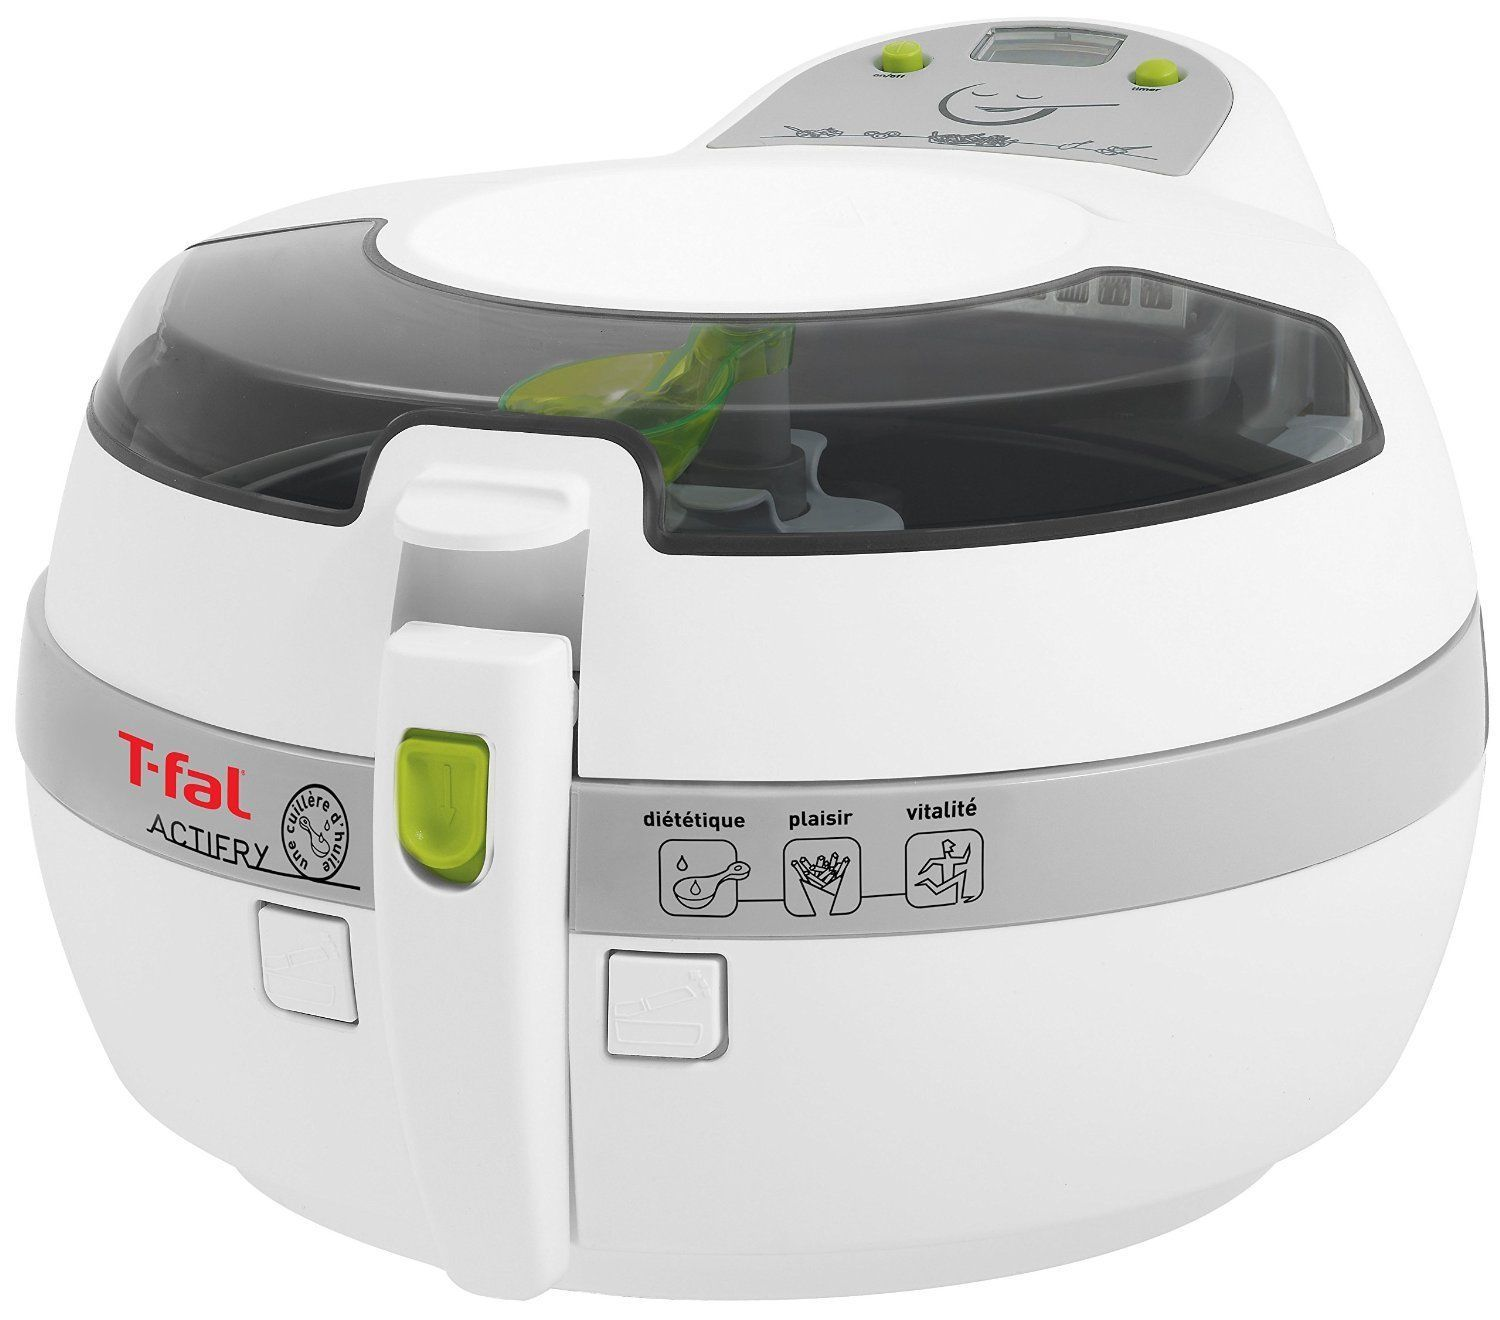 T-fal ActiFry (White) Deep Fryer